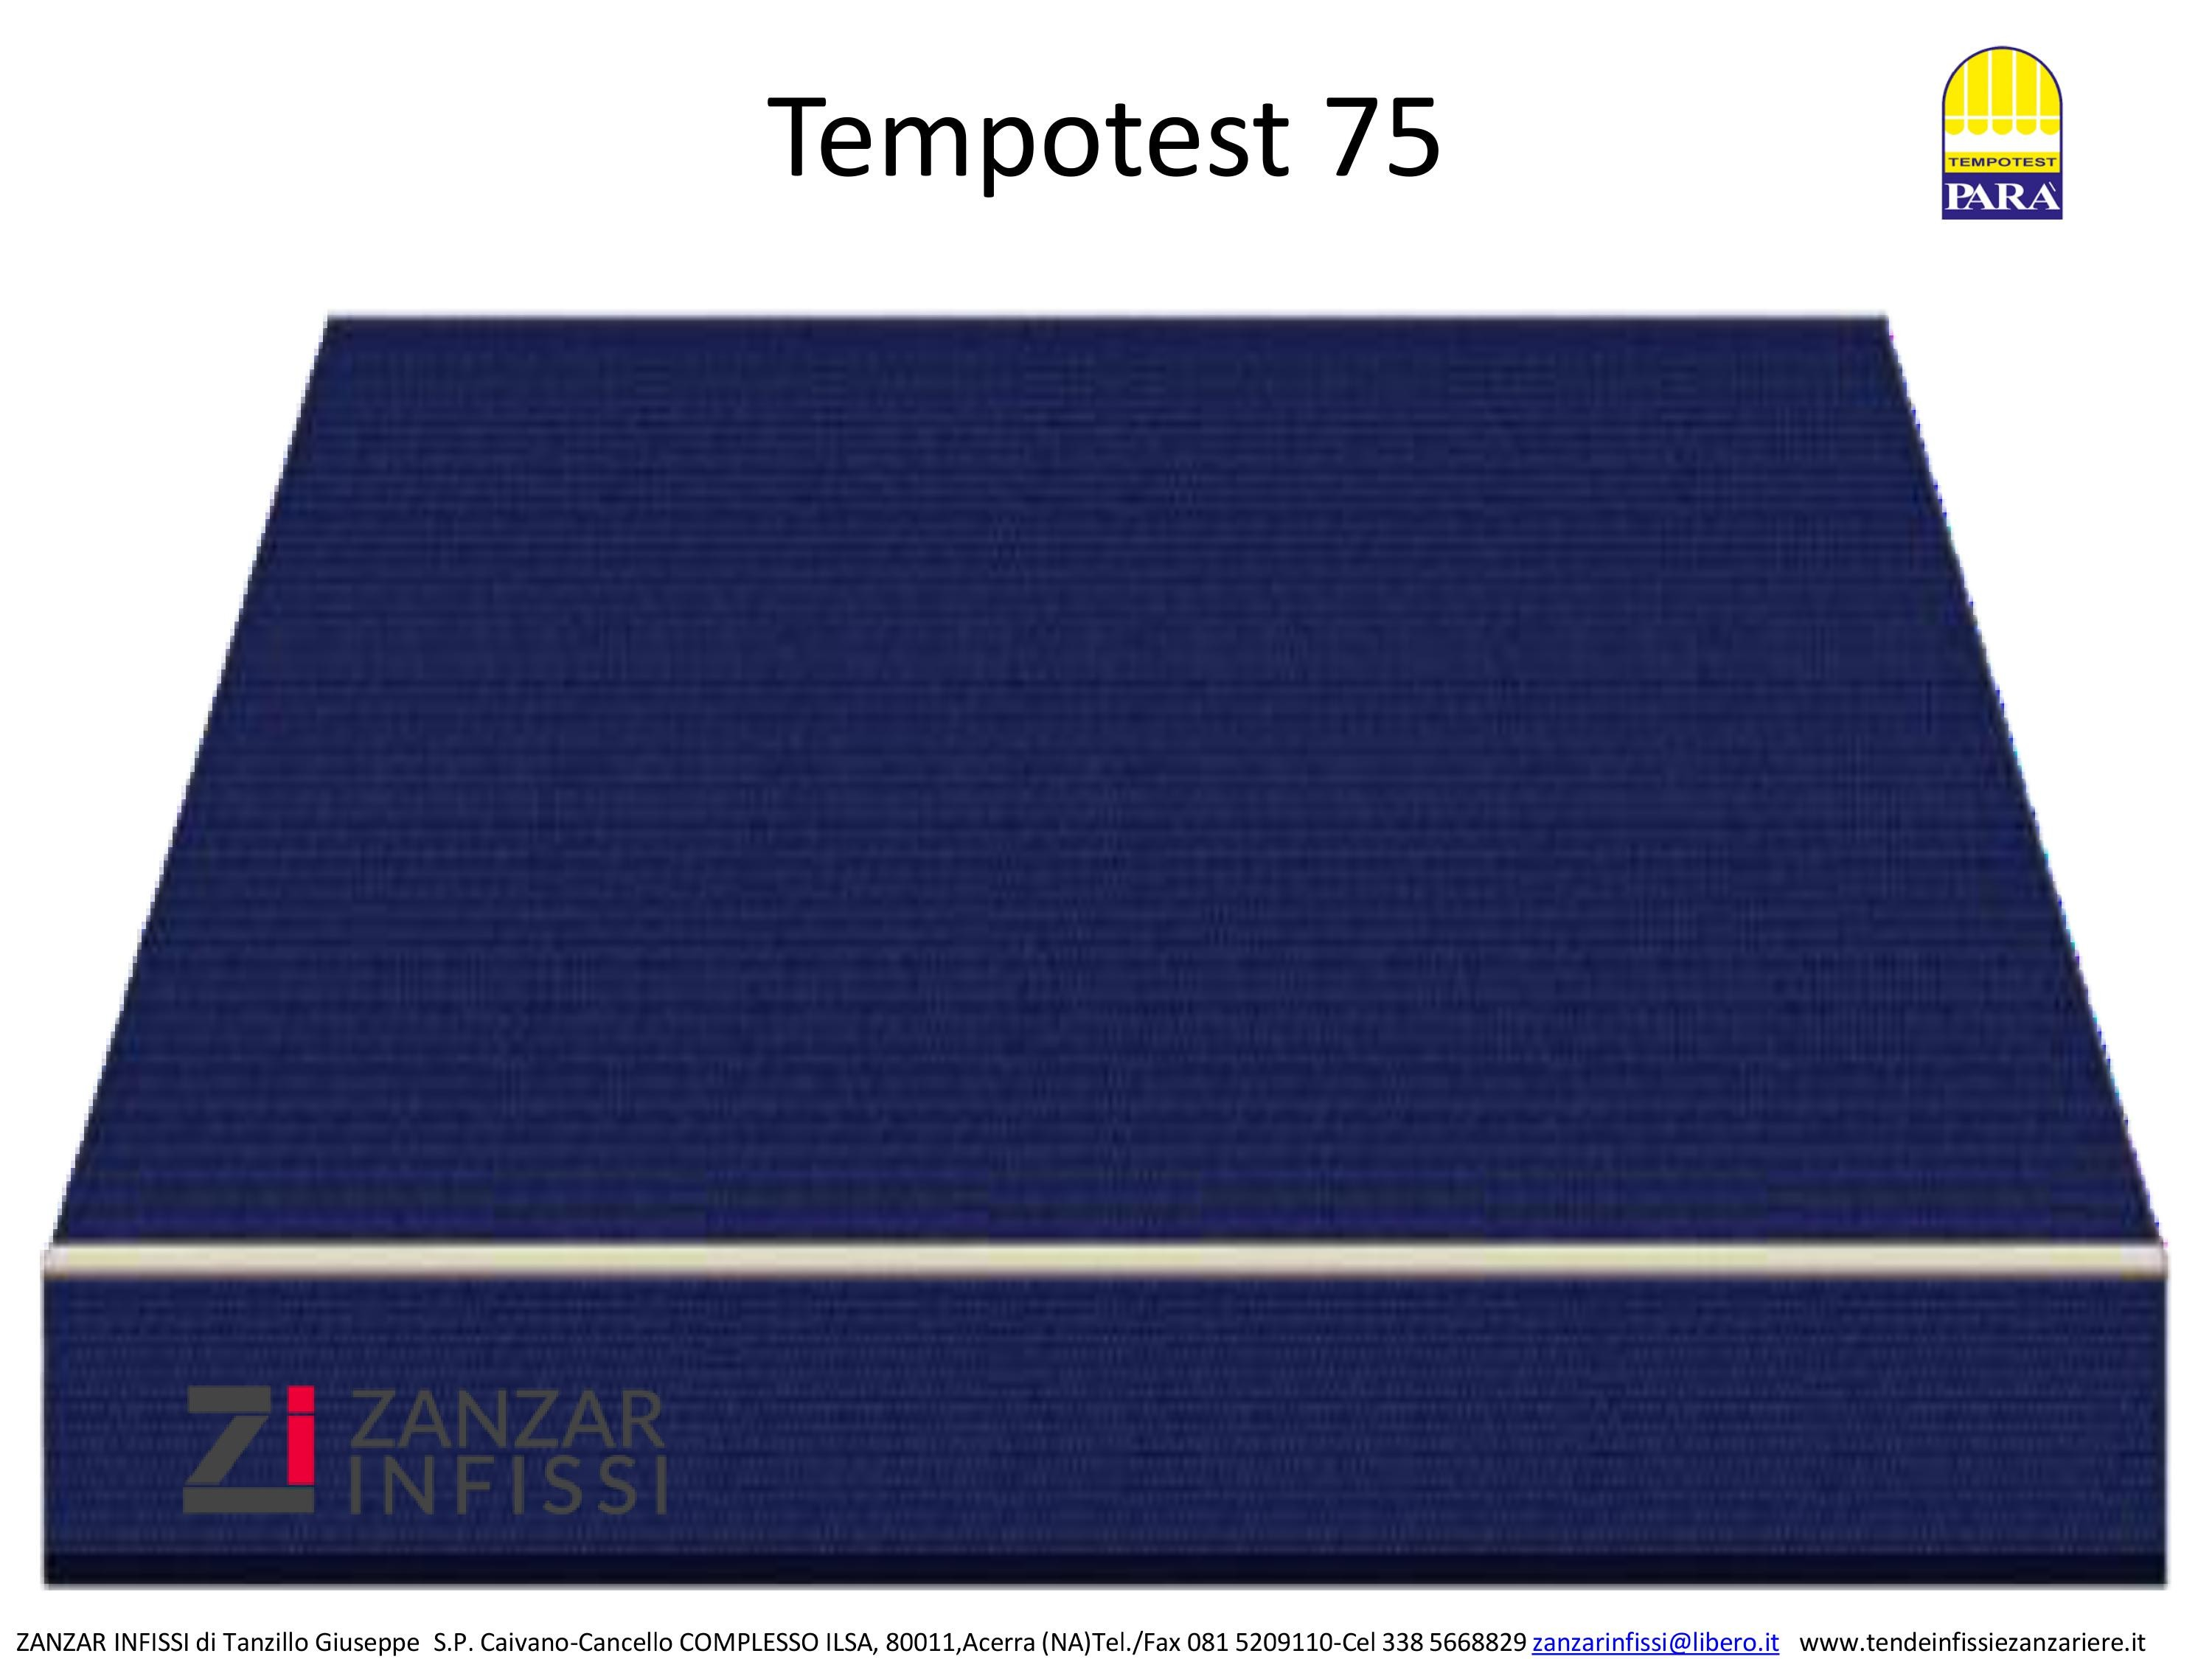 Tempotest 75